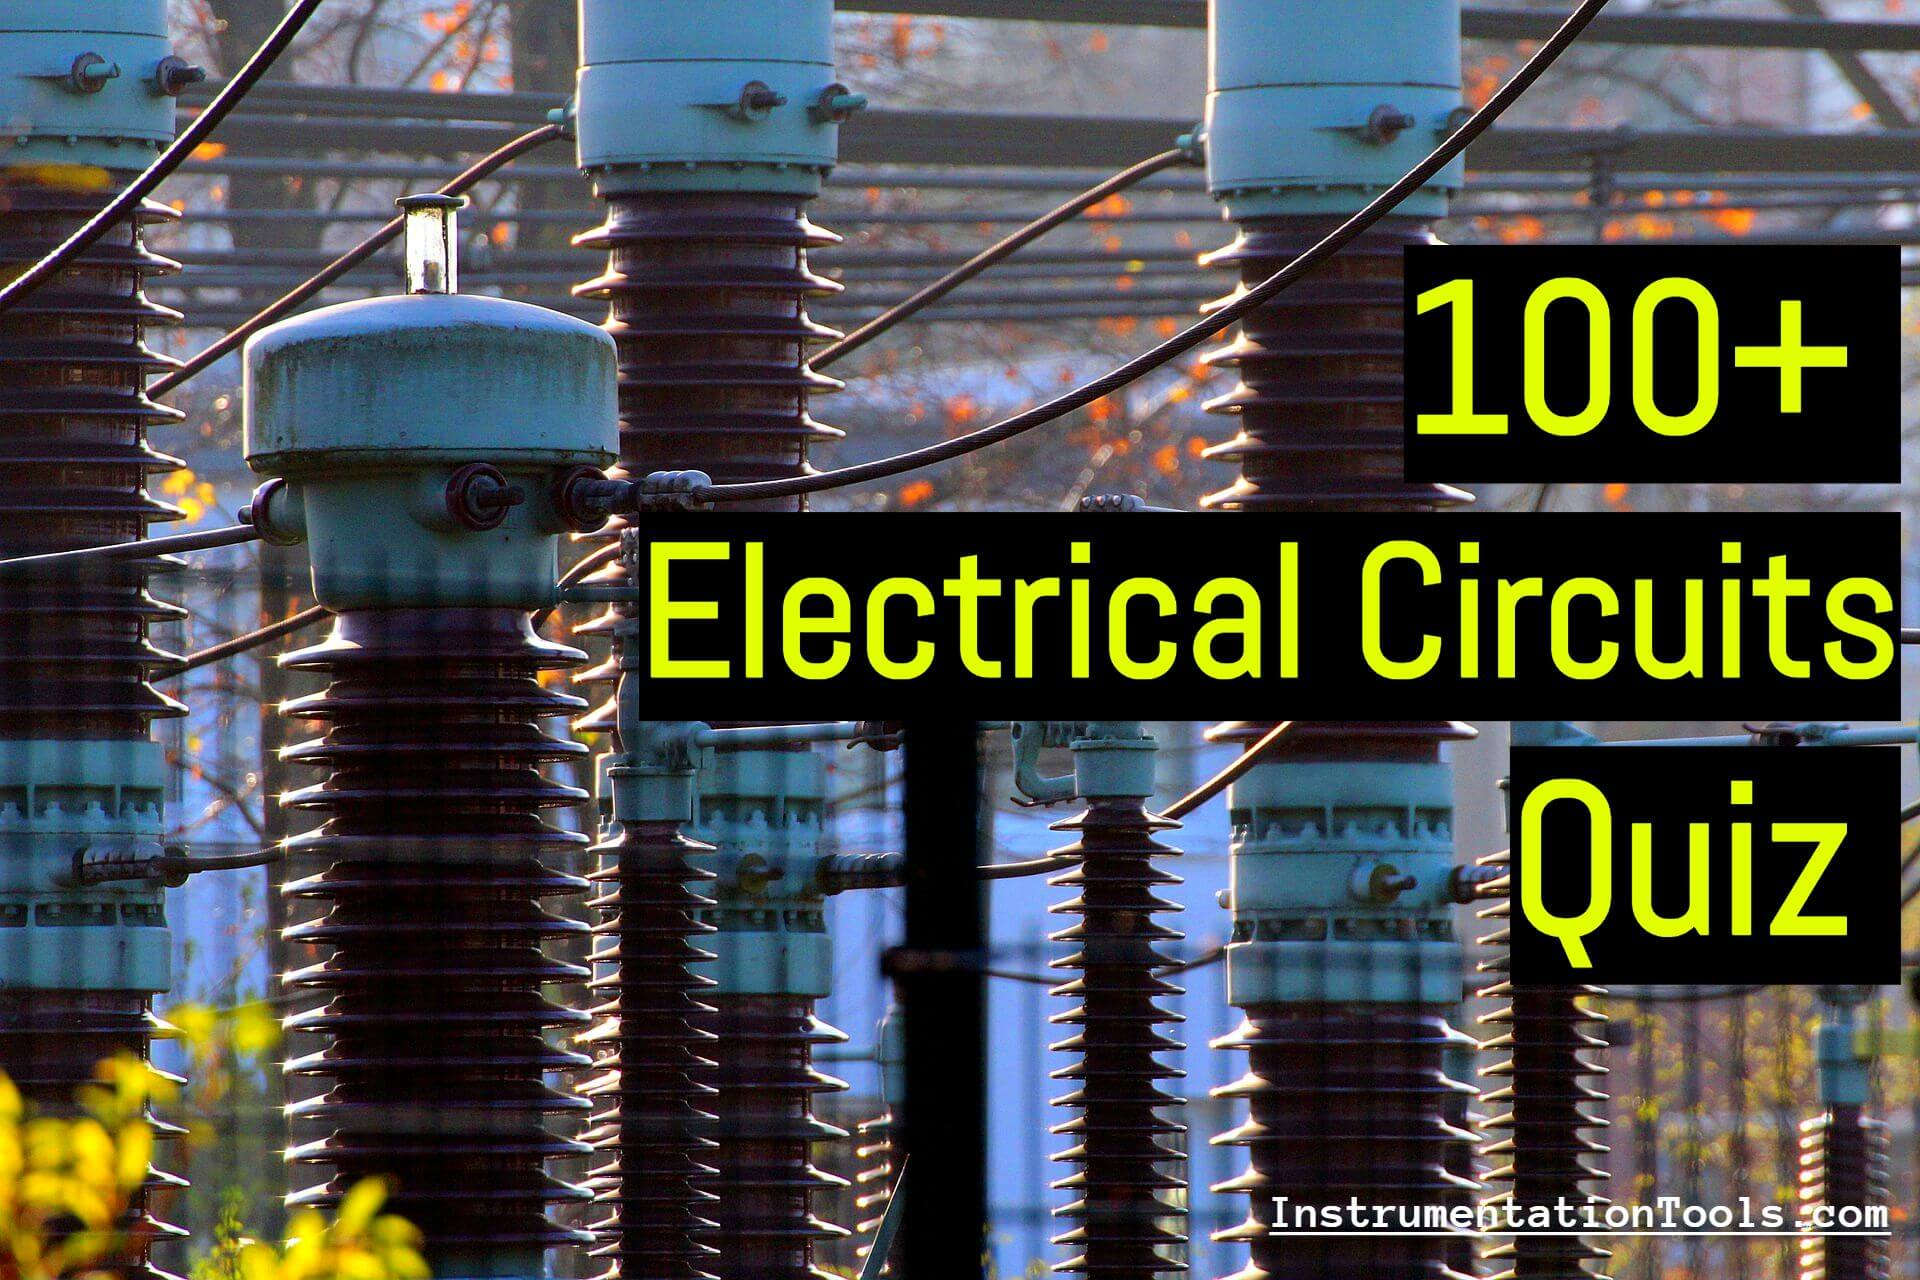 100+ Quiz on Electrical Circuits and Control